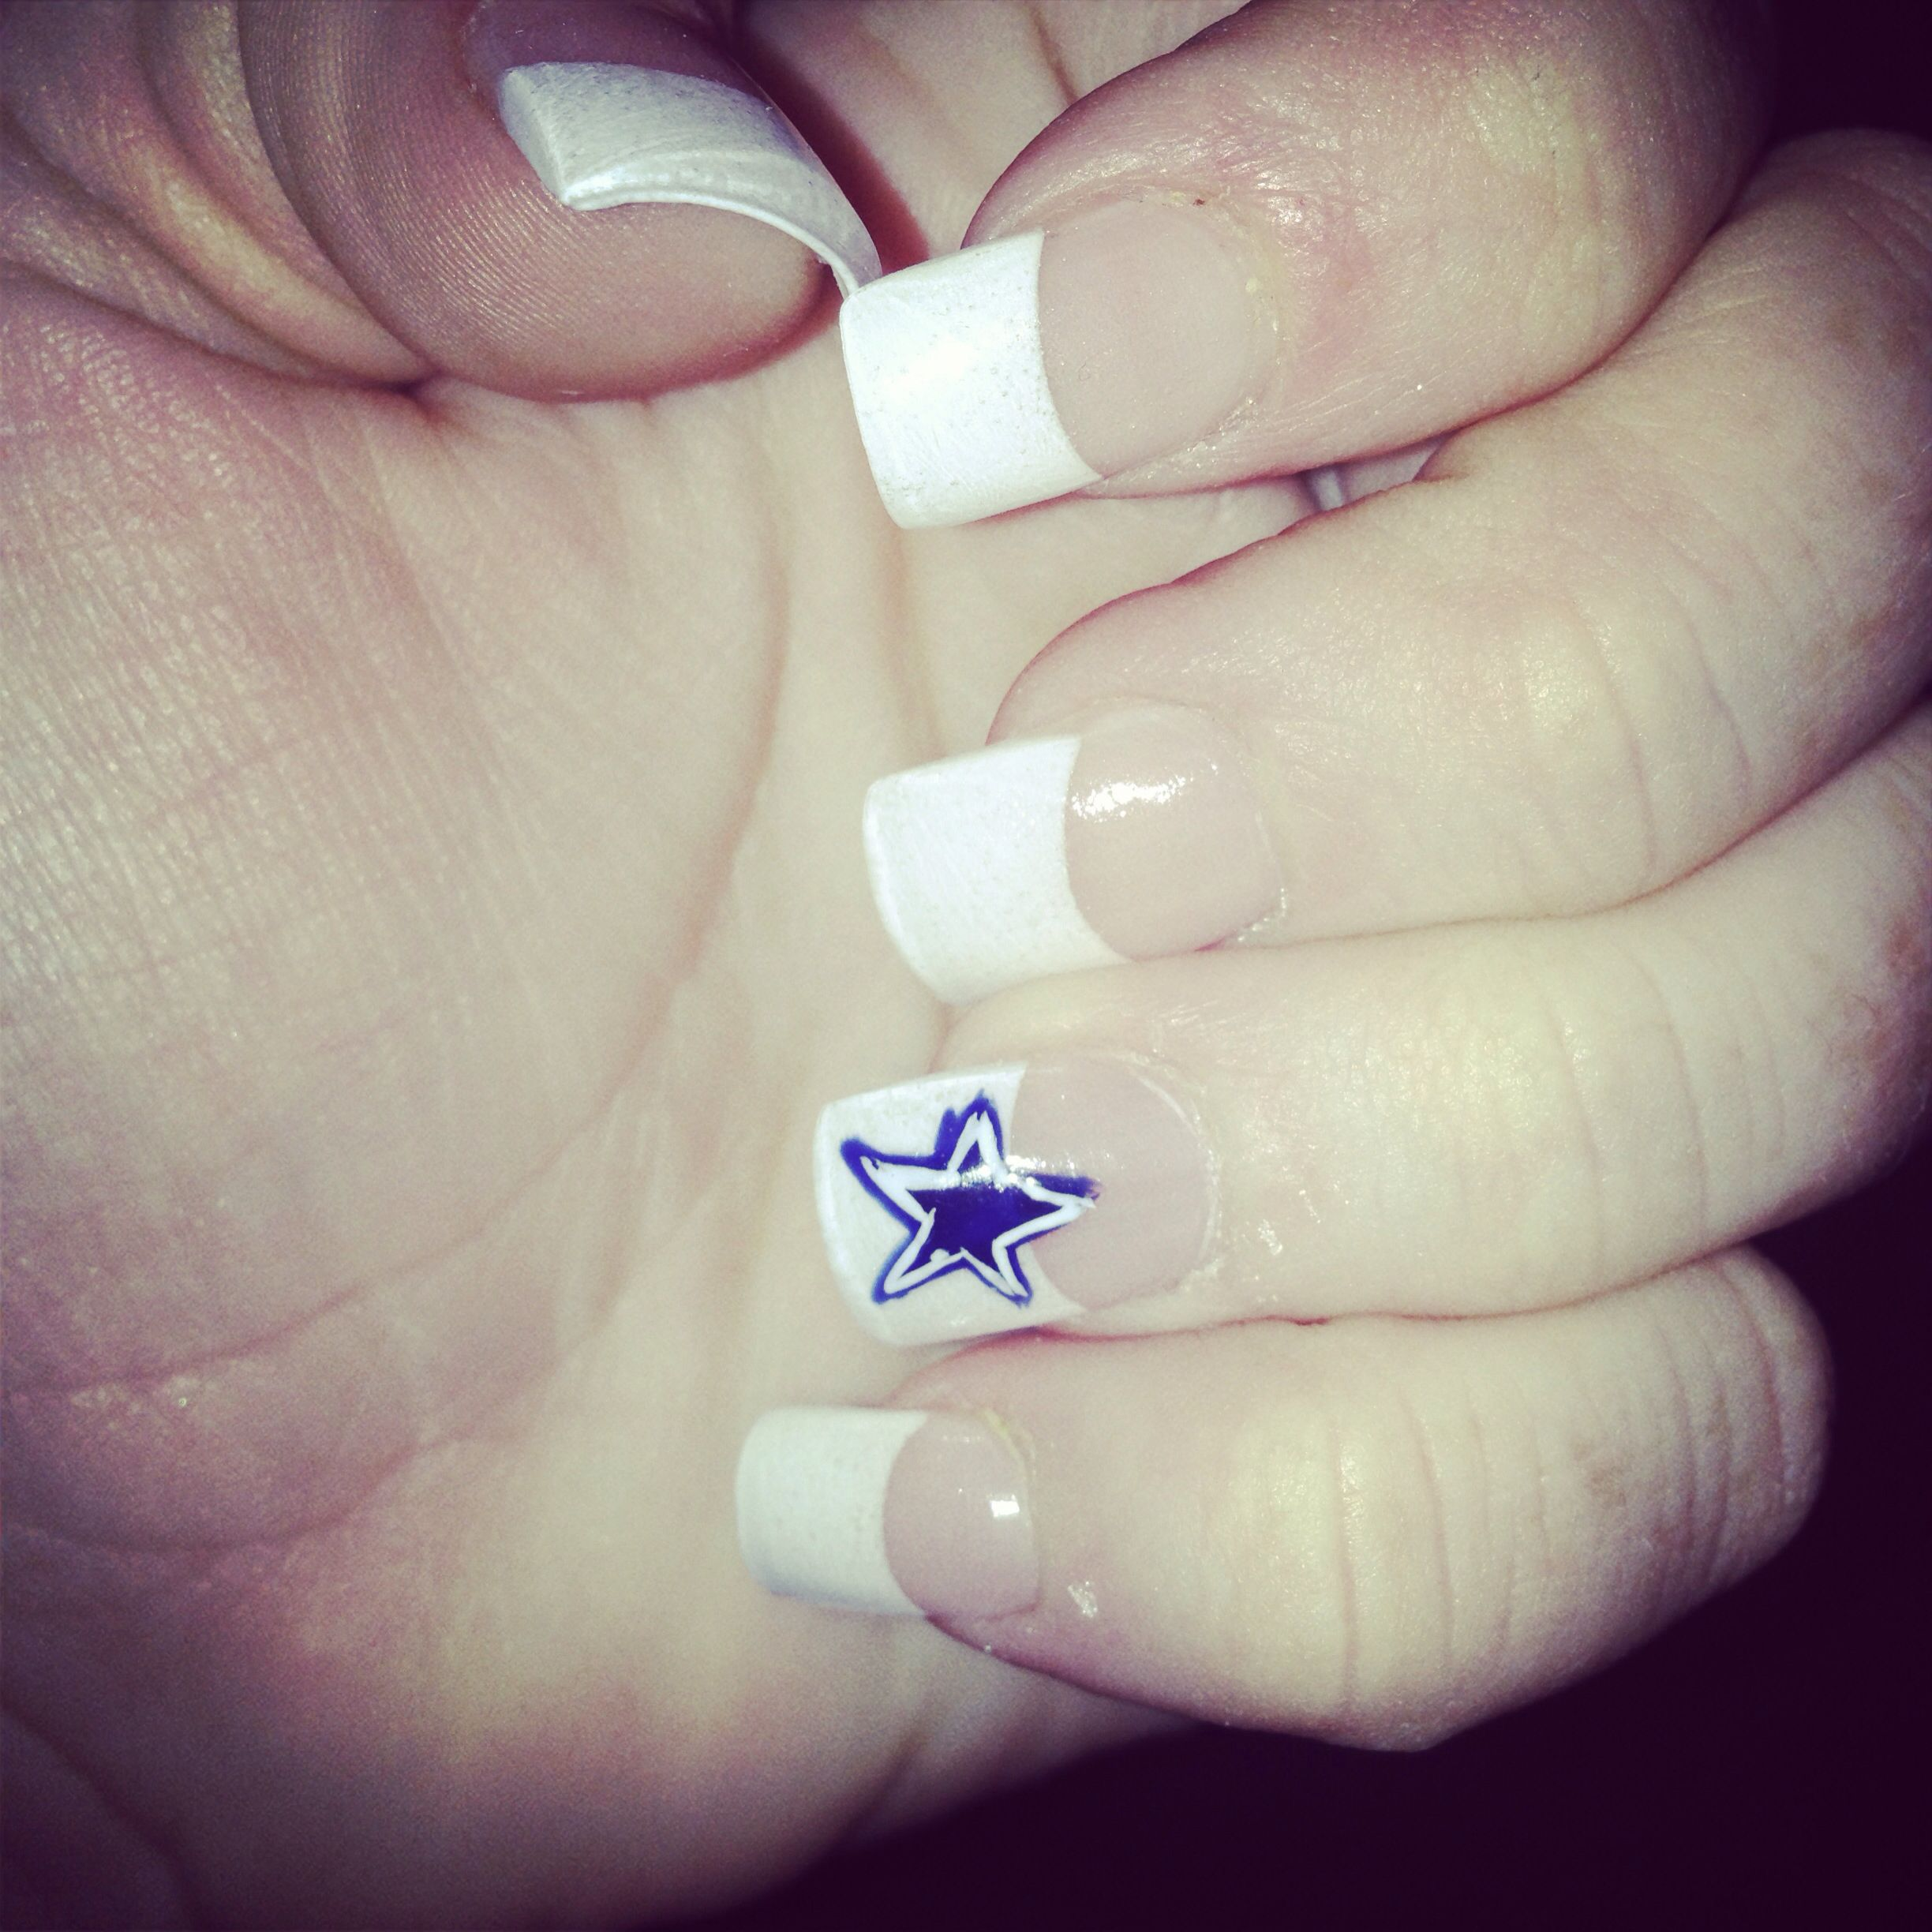 Dallas Cowboys nail art | Hair, clothes, nails, Fashion | Pinterest ...